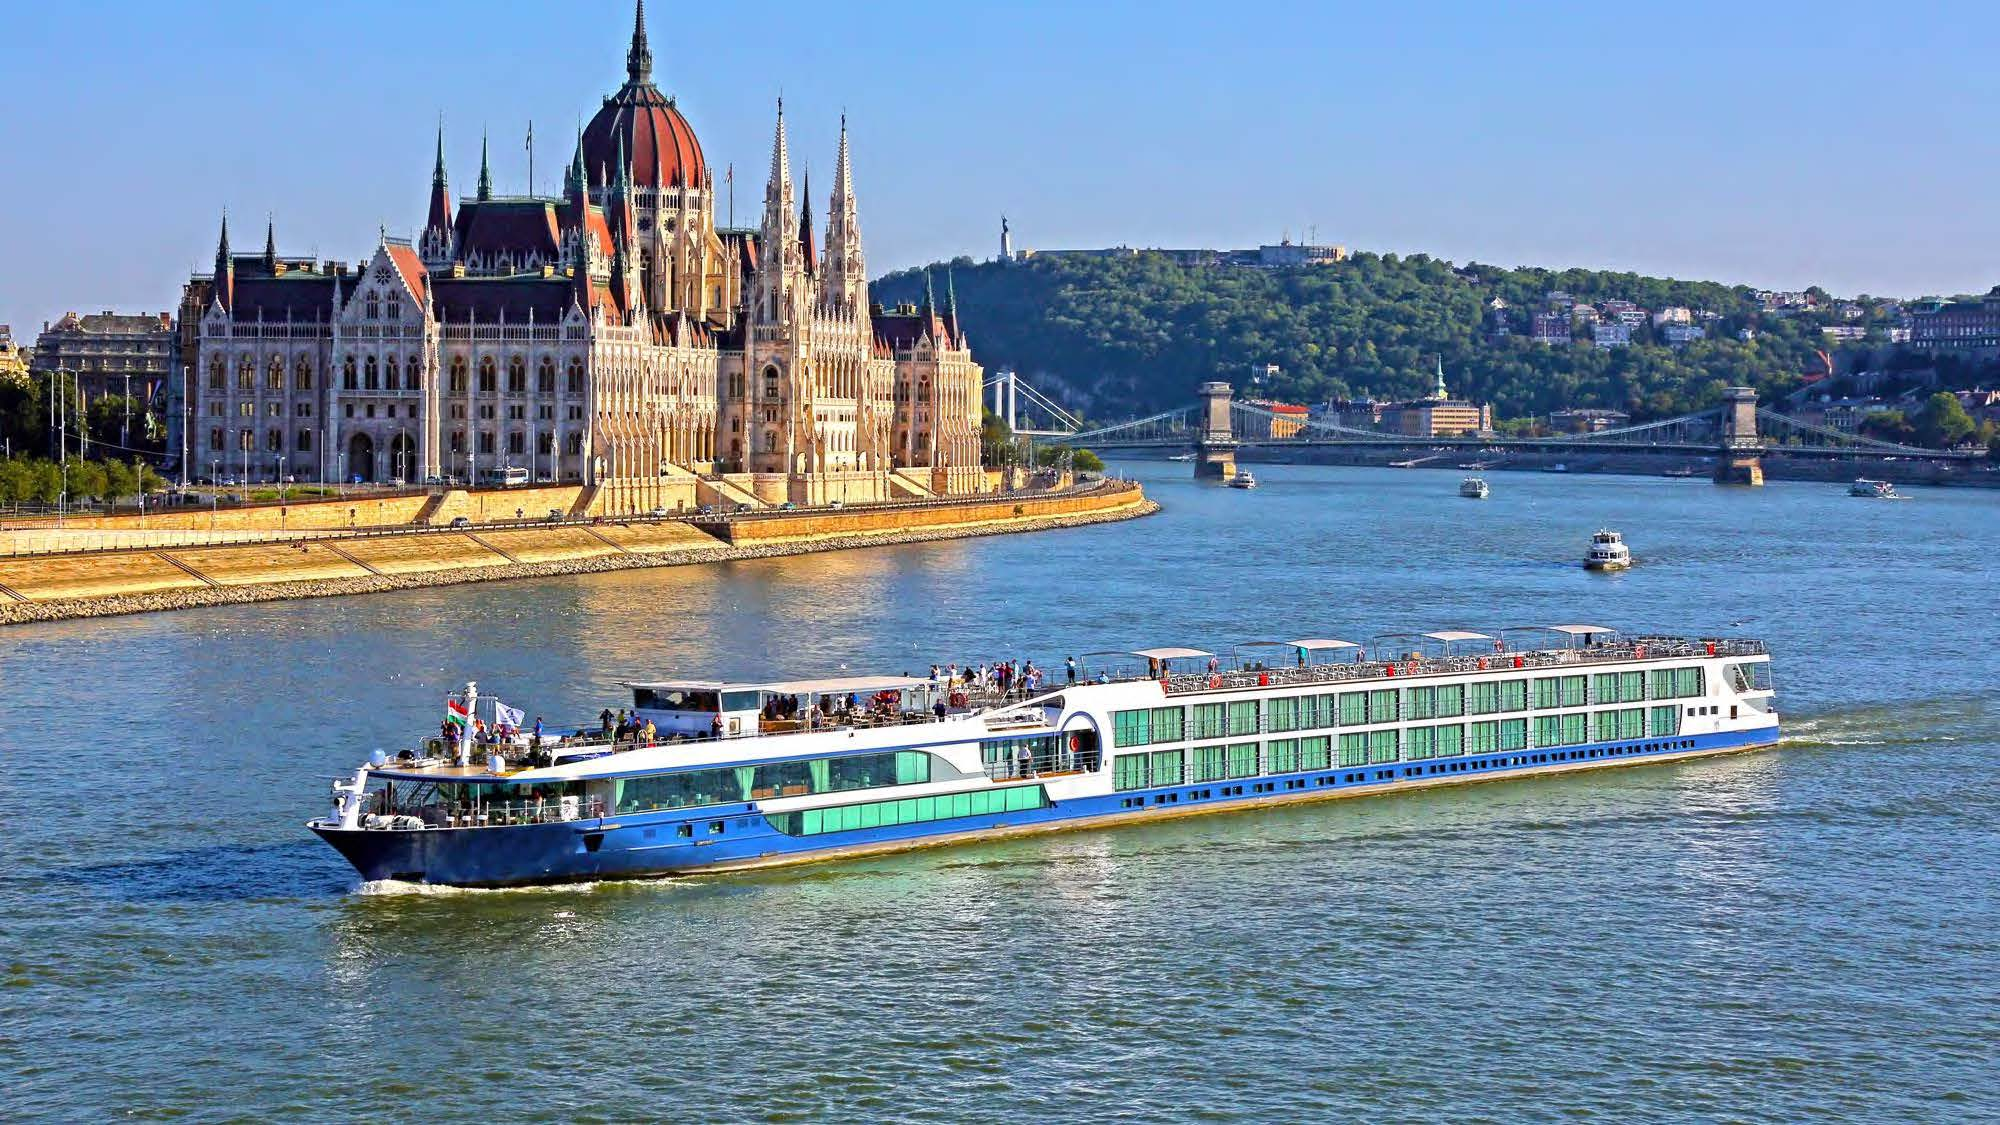 A cruise ship on the Danube River coasting by the Hungarian Parliament Building